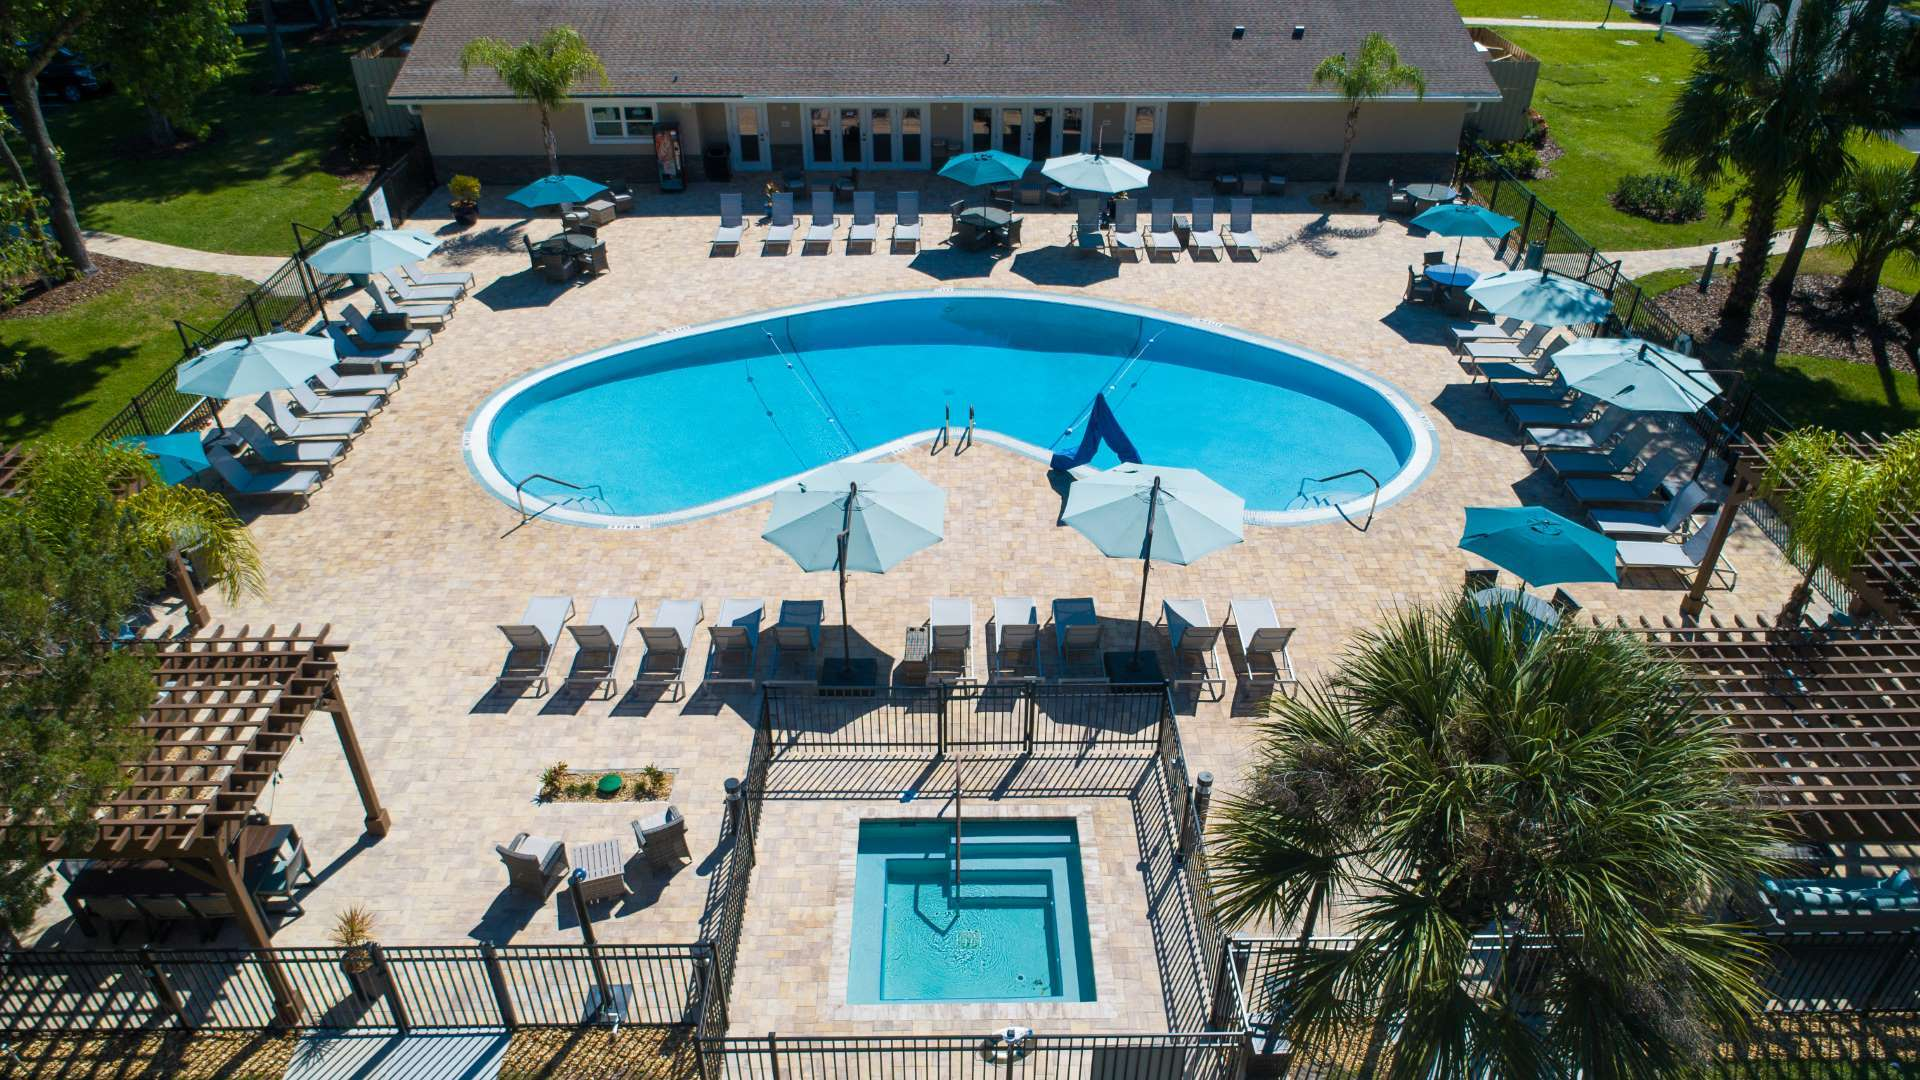 Colony in the Woods 55+ Manufactured Homes Community Aerial Swimming Pool and Hot Tub in Port Orange, FL